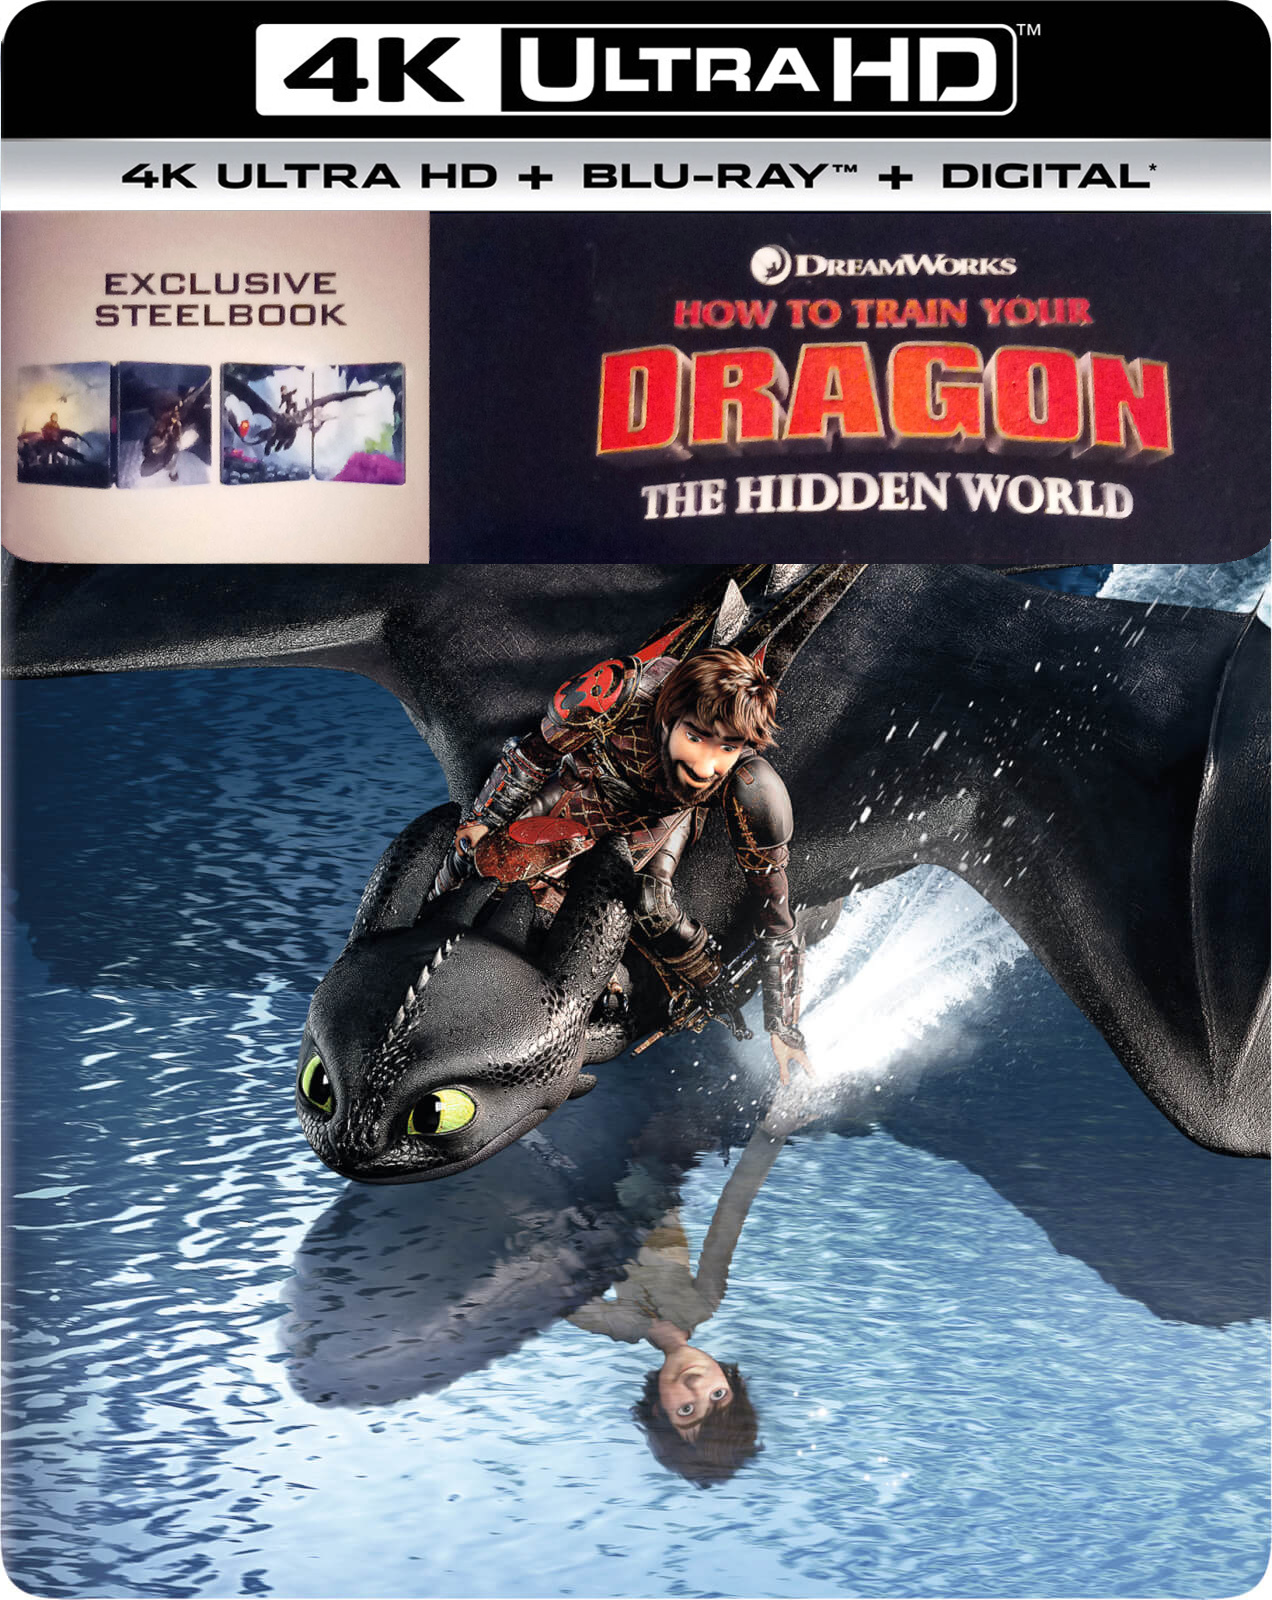 How to Train Your Dragon 3: The Hidden World (SteelBook)(4K Ultra HD Blu-ray)(Pre-order / TBA)